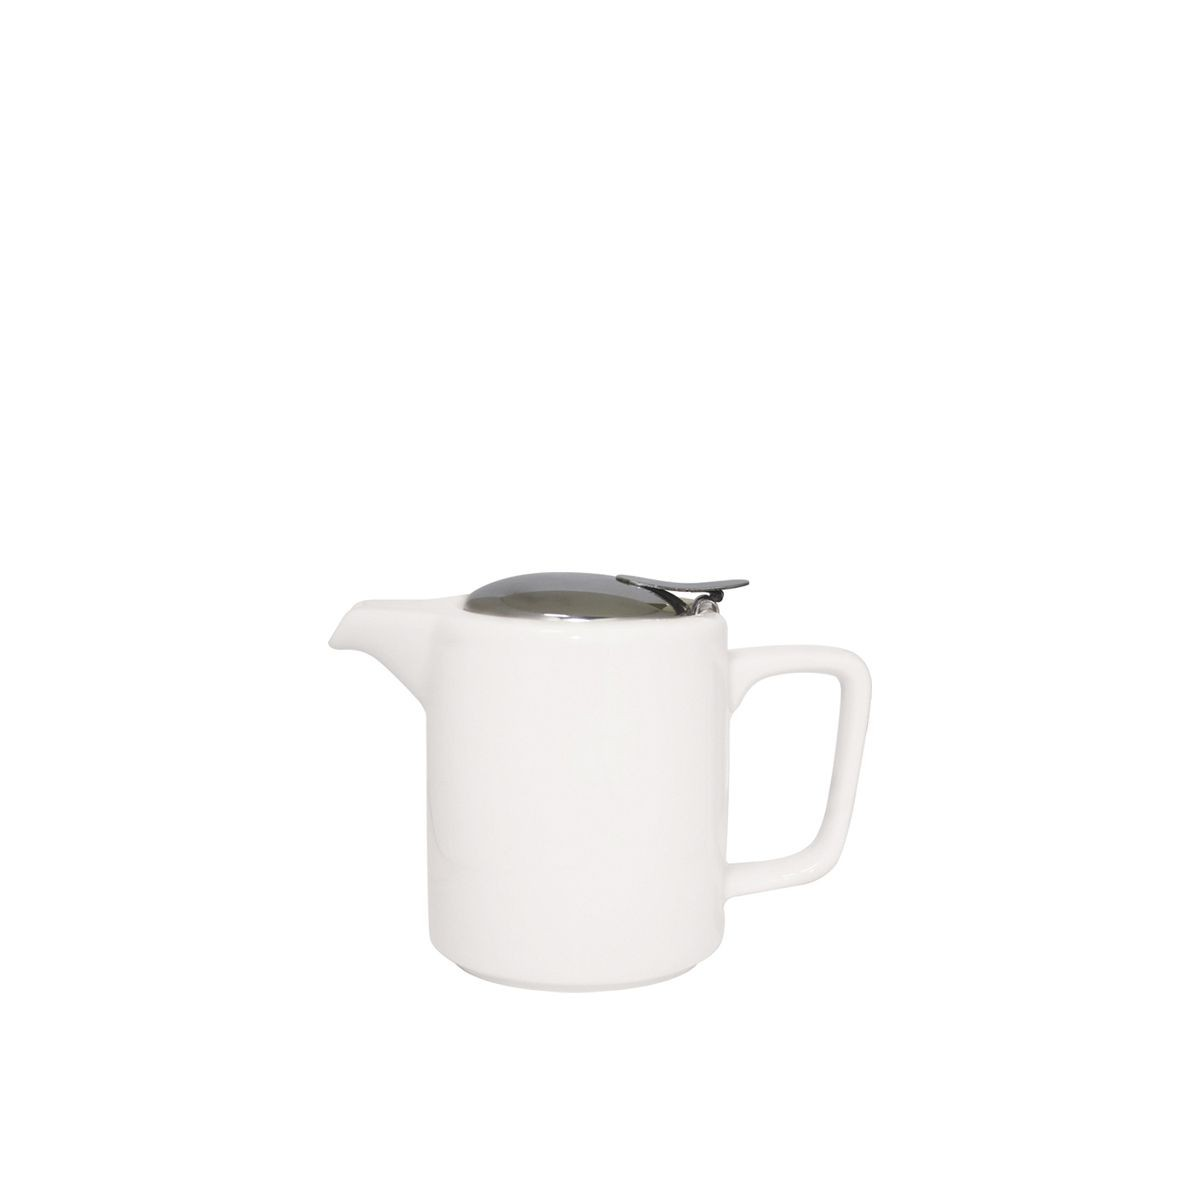 Service Ideas TPCW16WH Square Washington Style White Ceramic Teapot, 0.47 Liter